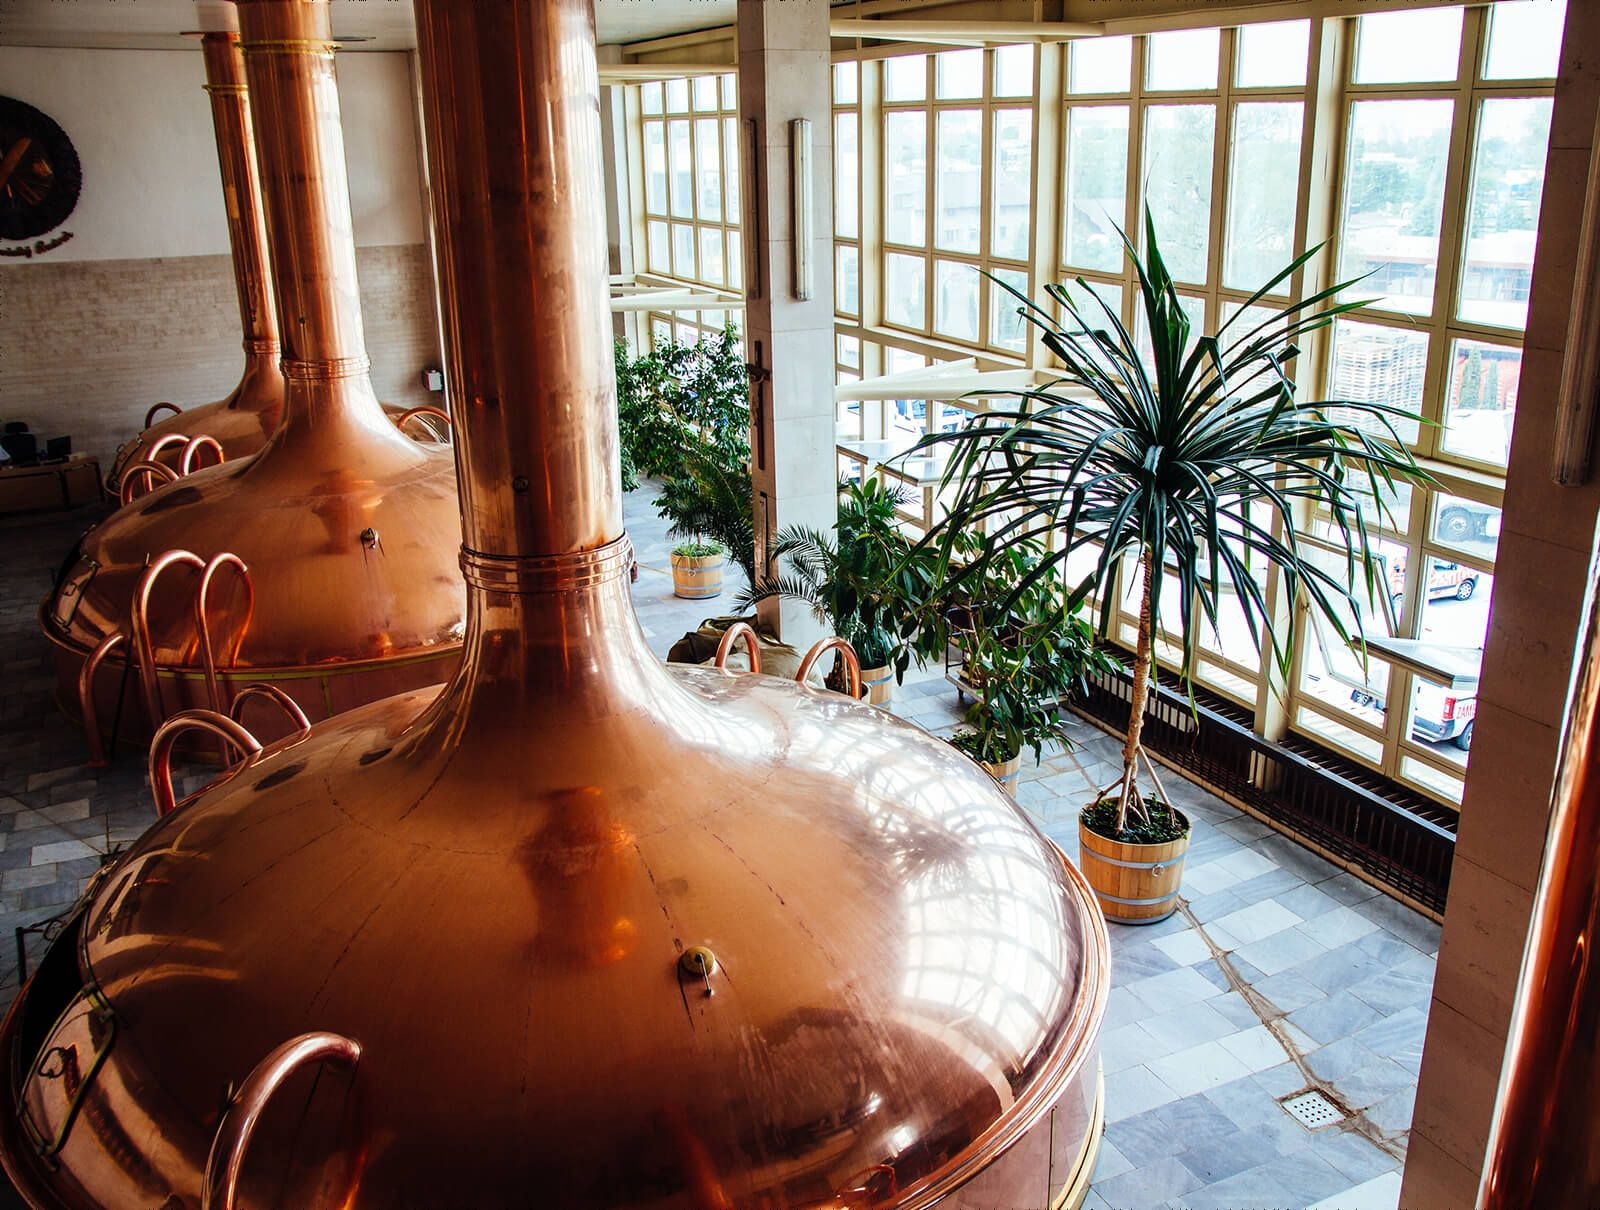 The brew kettles in the brewhouse - Budweiser Budvar brewery. #brewery #brewing #beer #czech #craftbeer #copper